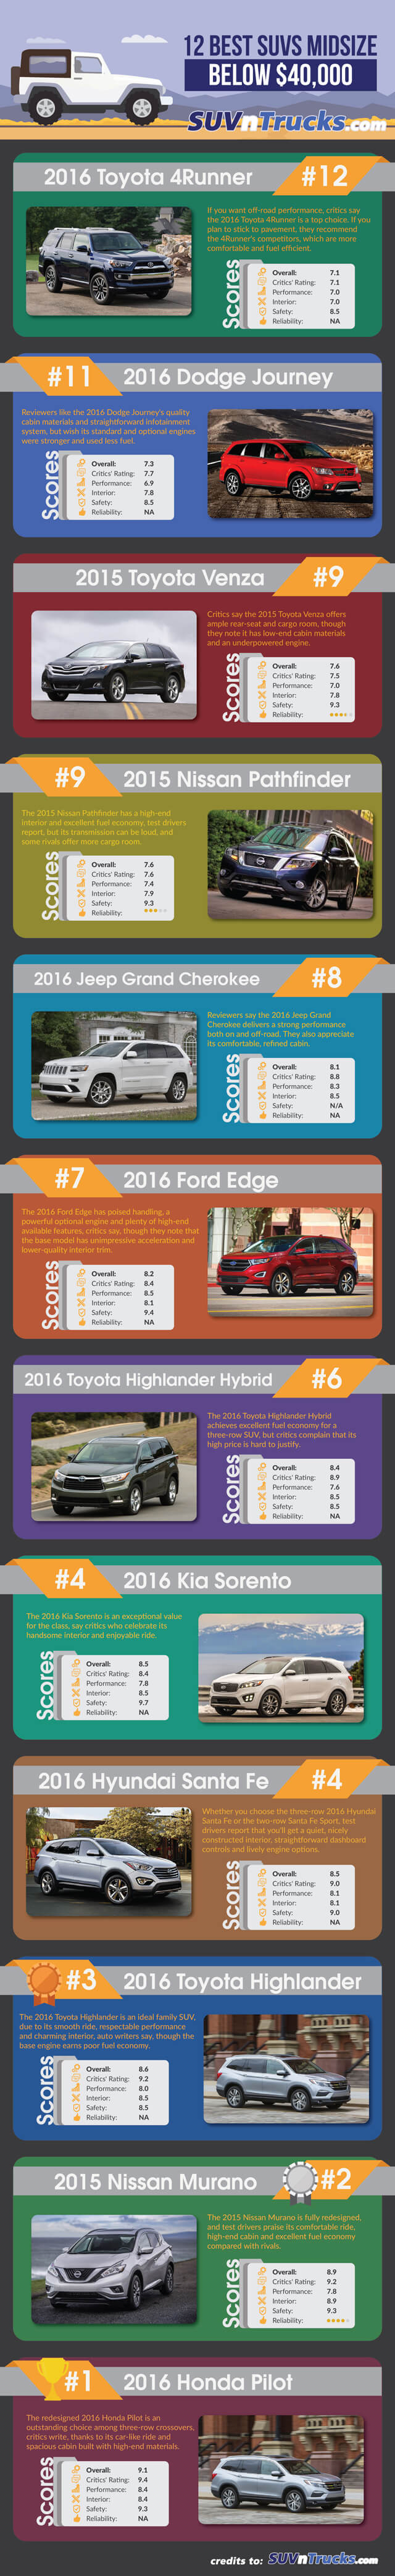 Midsize-SUVs-under-40000(1)